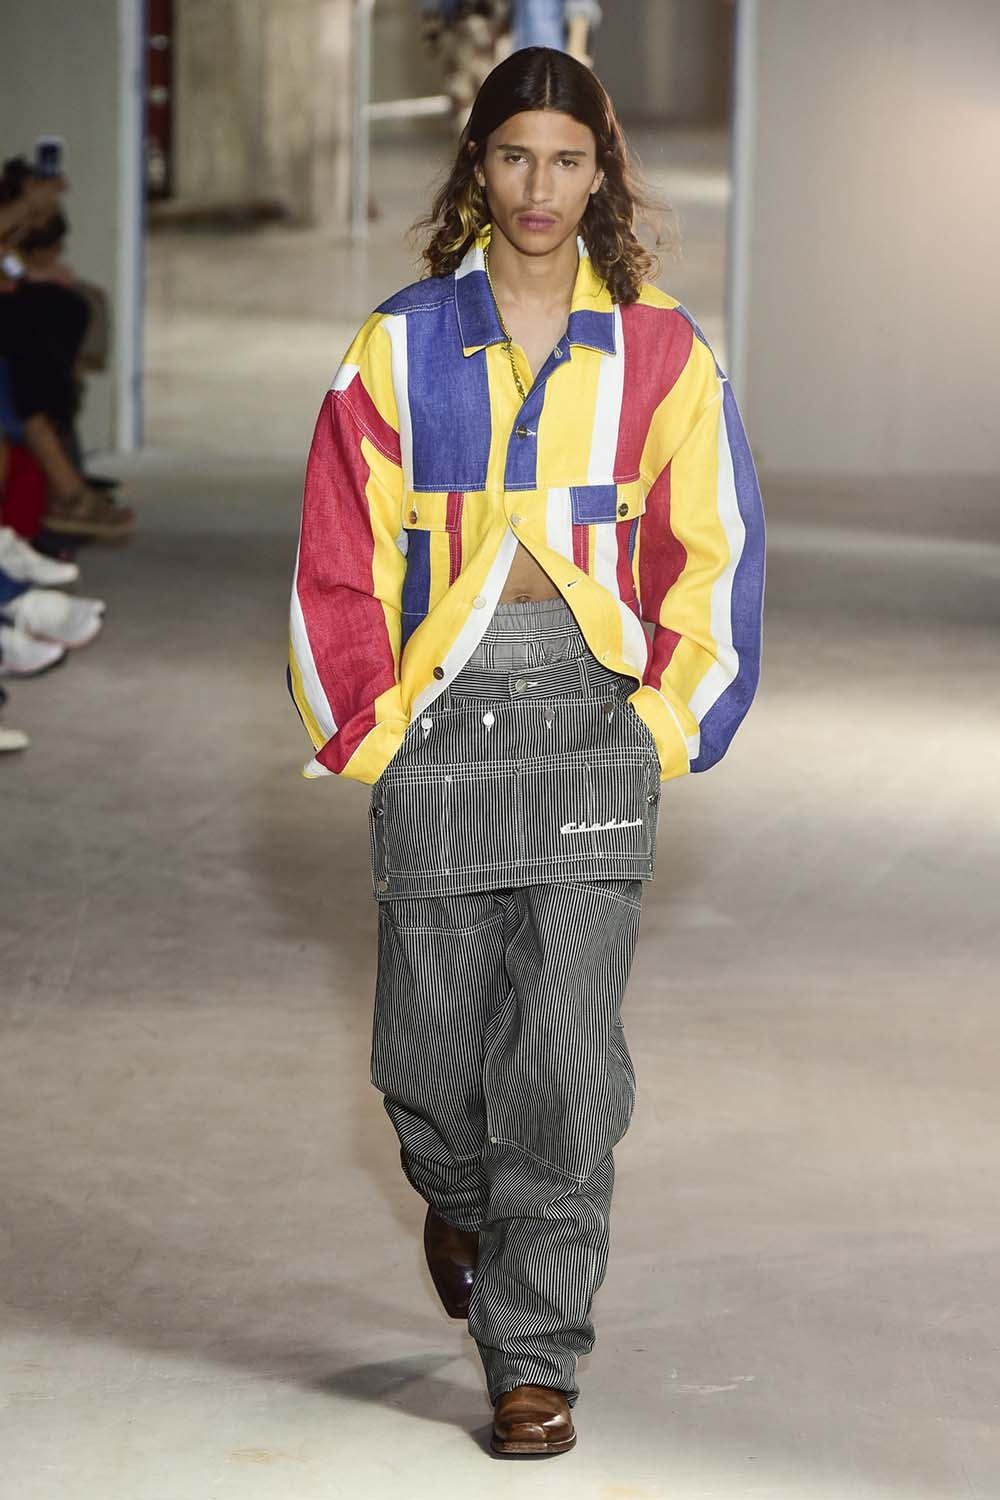 Etudes Paris Fashion Week Men's SS19 - Sagaboi - Look 13